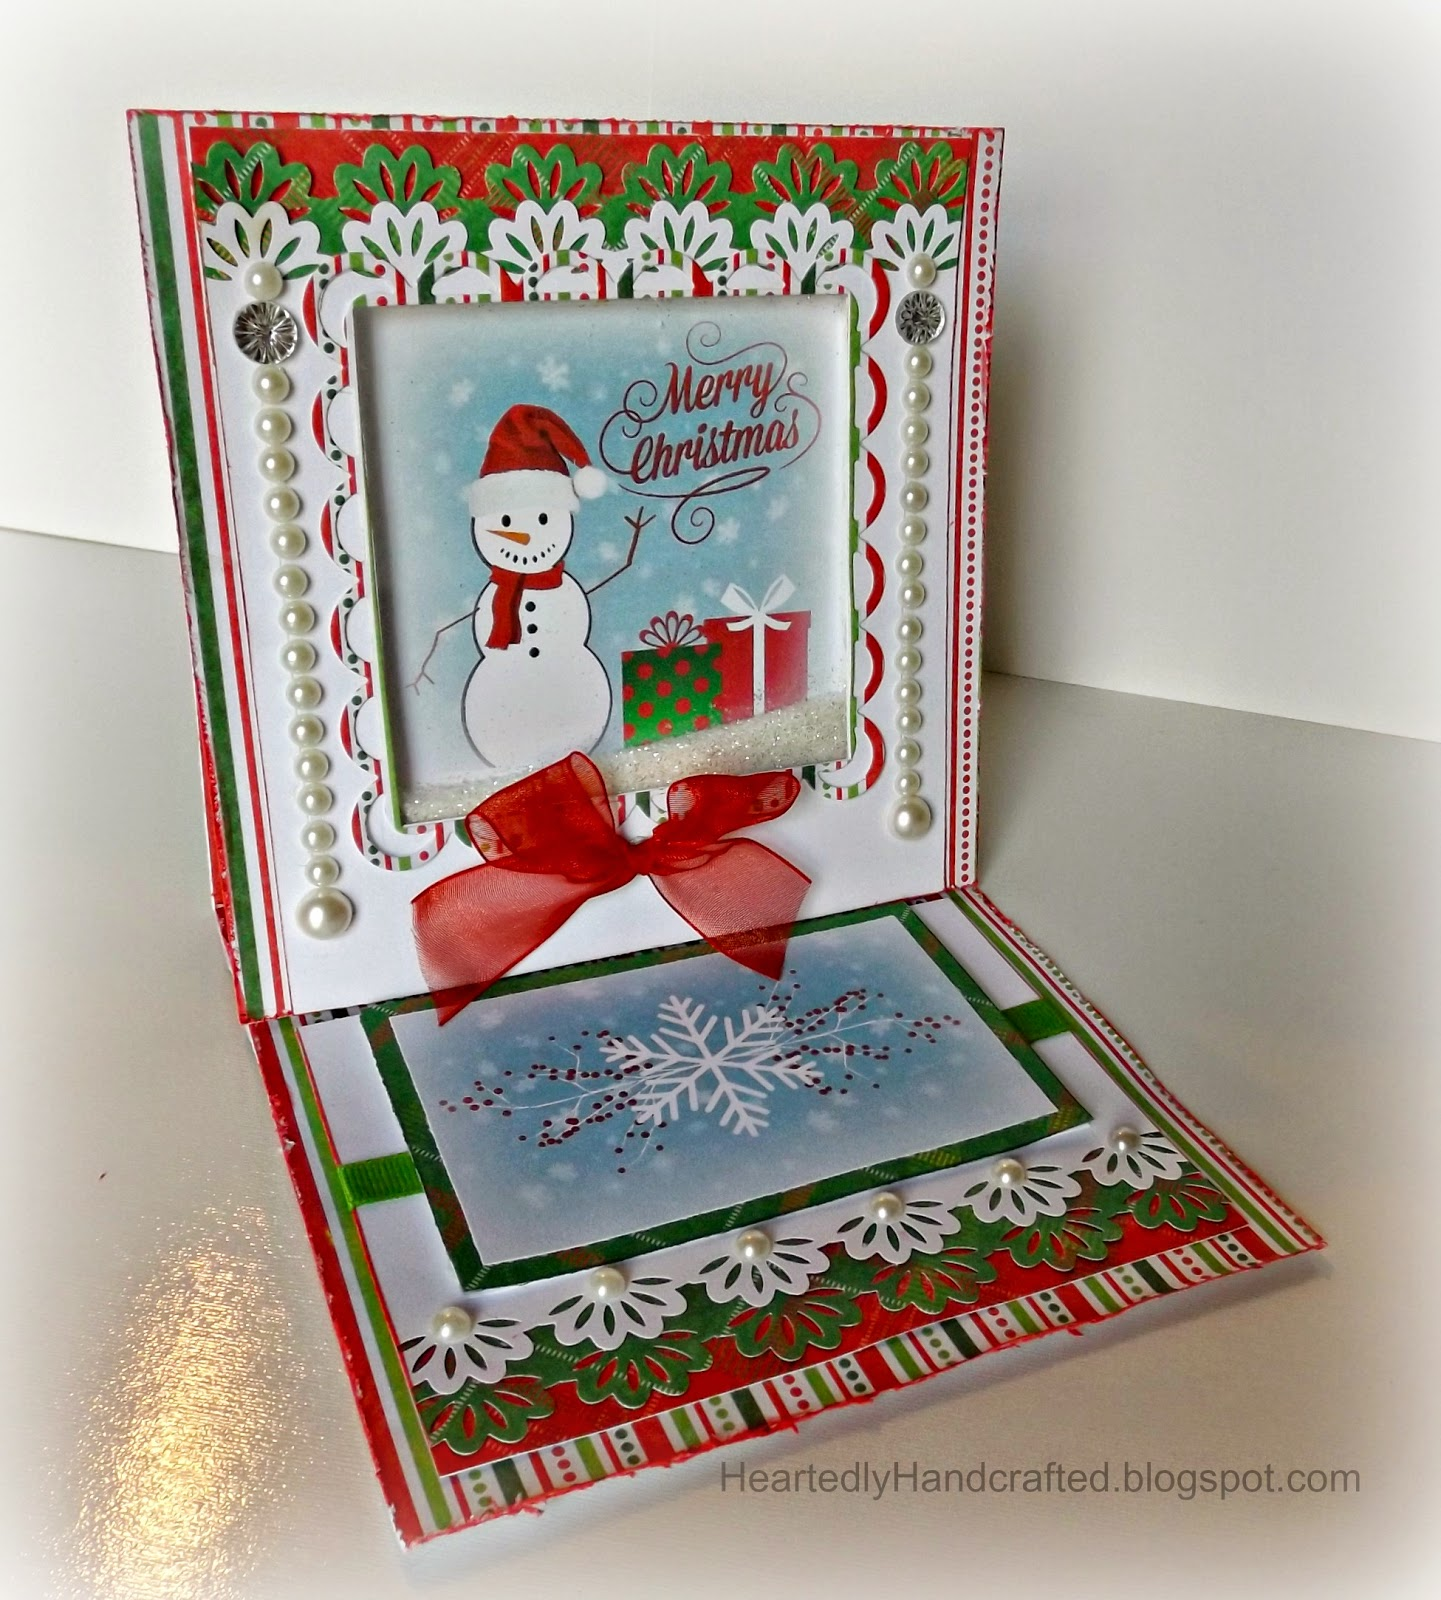 Shaker Easel Card with a Note: Merry Christmas